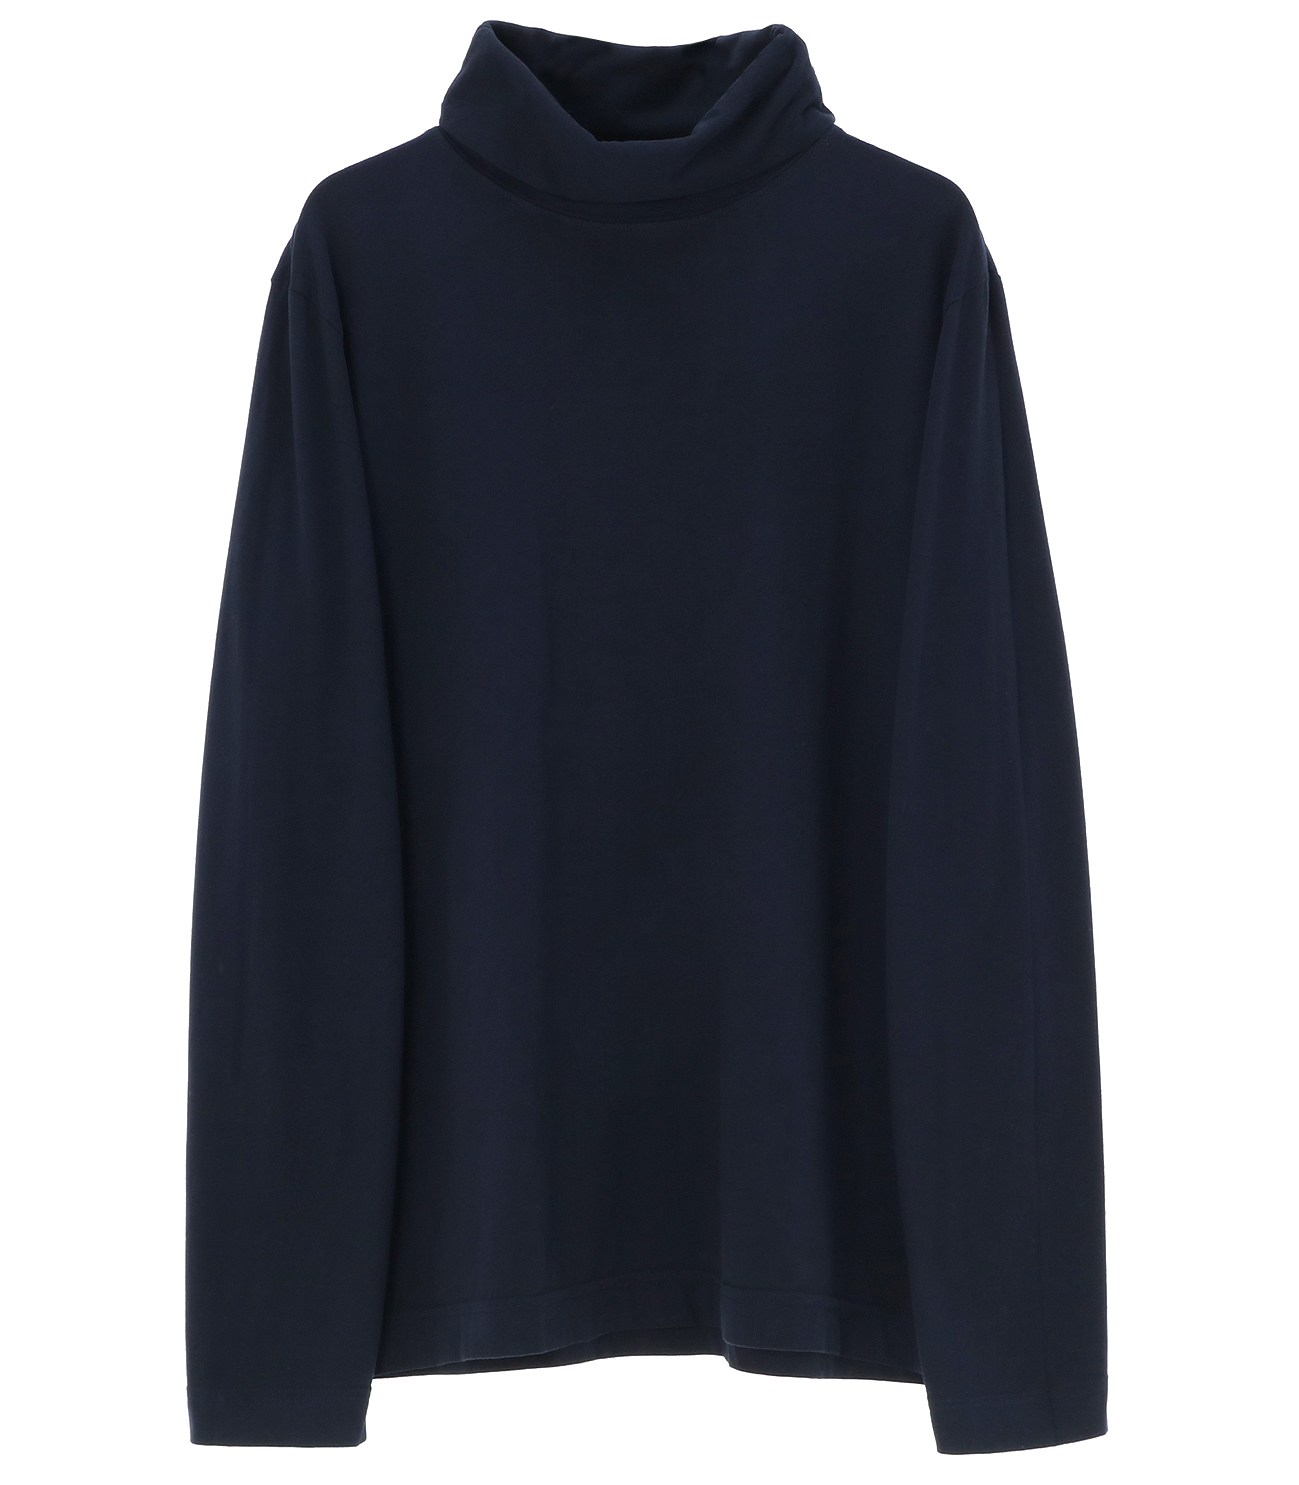 Men's sanded jersey turtleneck 詳細画像 night iris 1